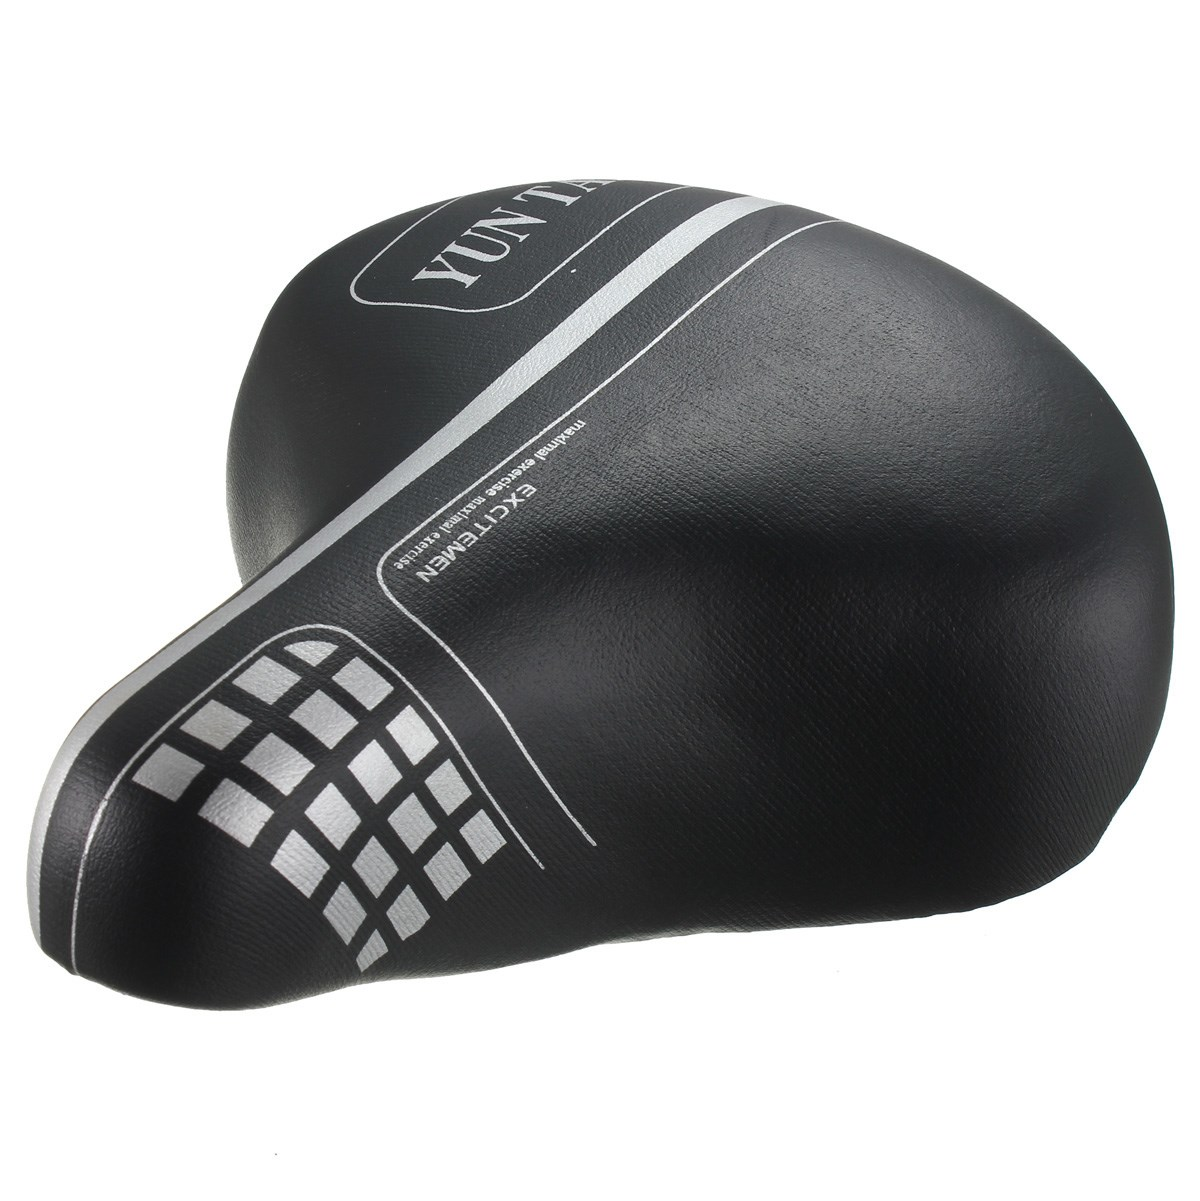 OUTERDO Durable Extra Comfortable MTB Mountain Road <font><b>Bike</b></font> Skidproof Cycling Cushion Seat Pad Bicycle Saddle Cover Bicycle Parts